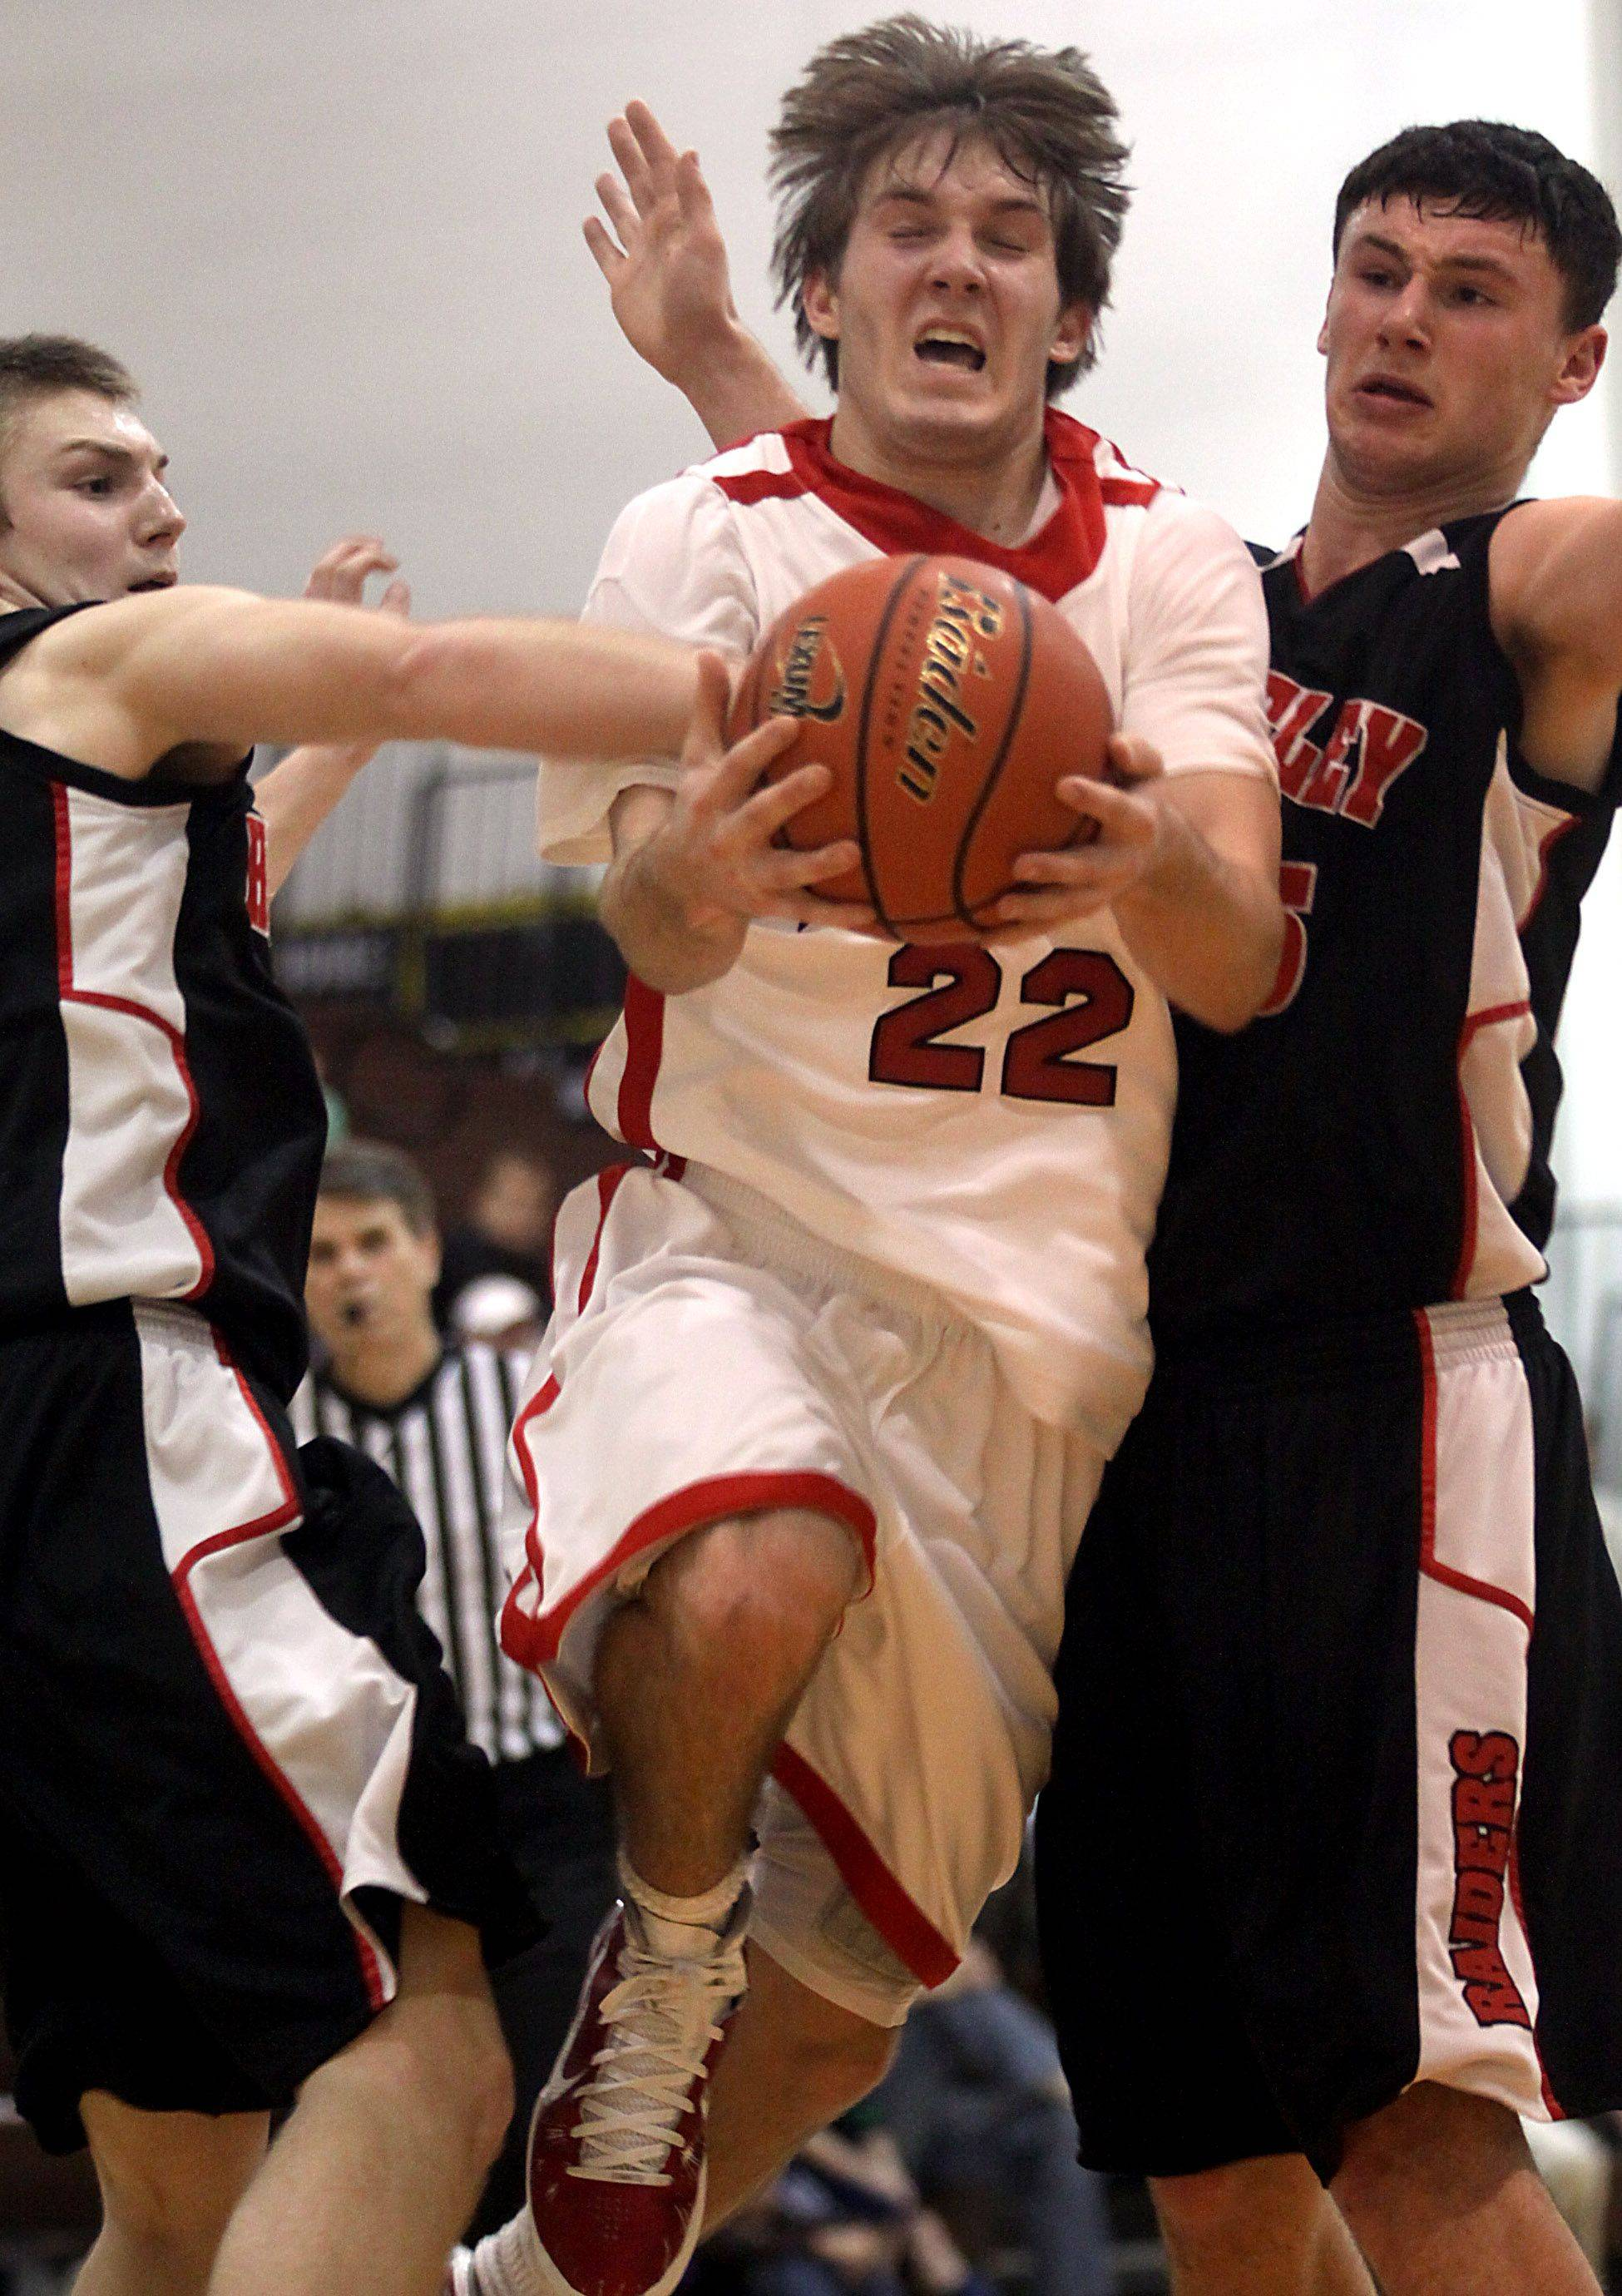 Robert Knar of Mundelein splits the Huntley defense on his way to the hoop during the title game of the Jacobs Holiday Classic Boys Basketball Tournament in Algonquin.